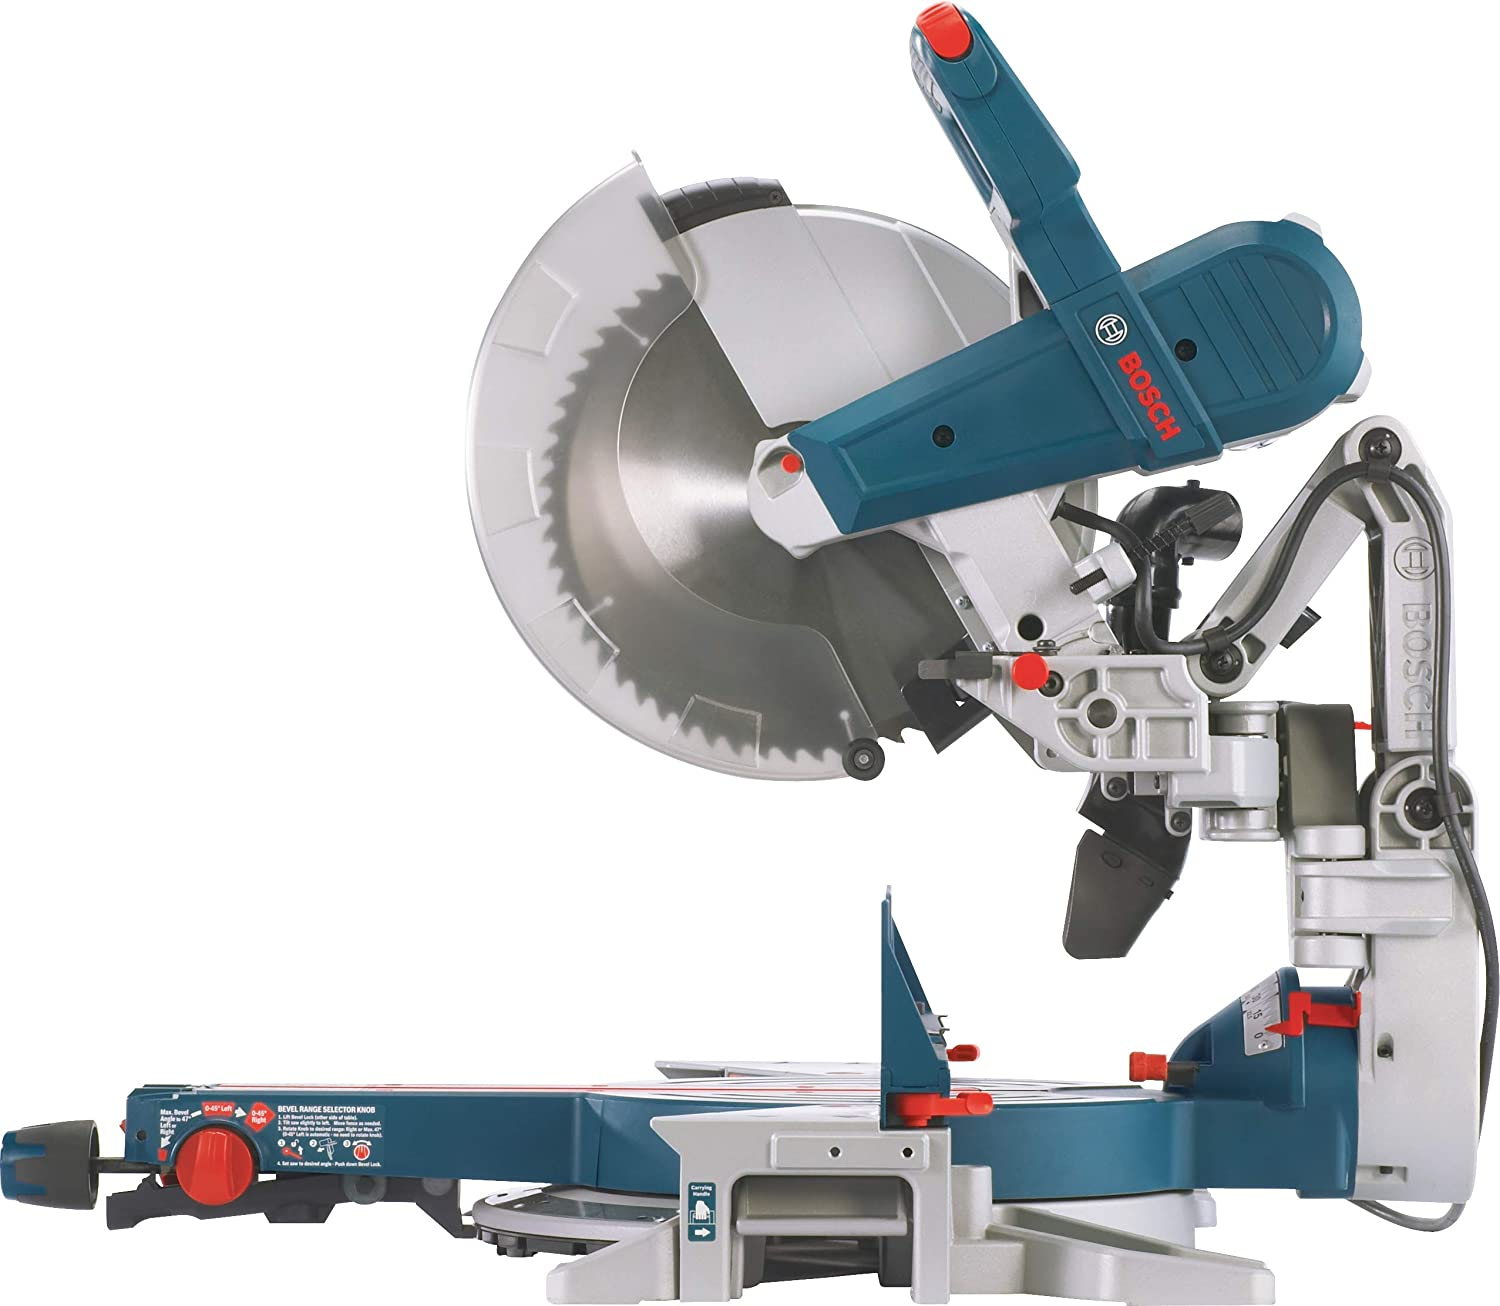 Bosch Gcm12Sd Miter Saw Review